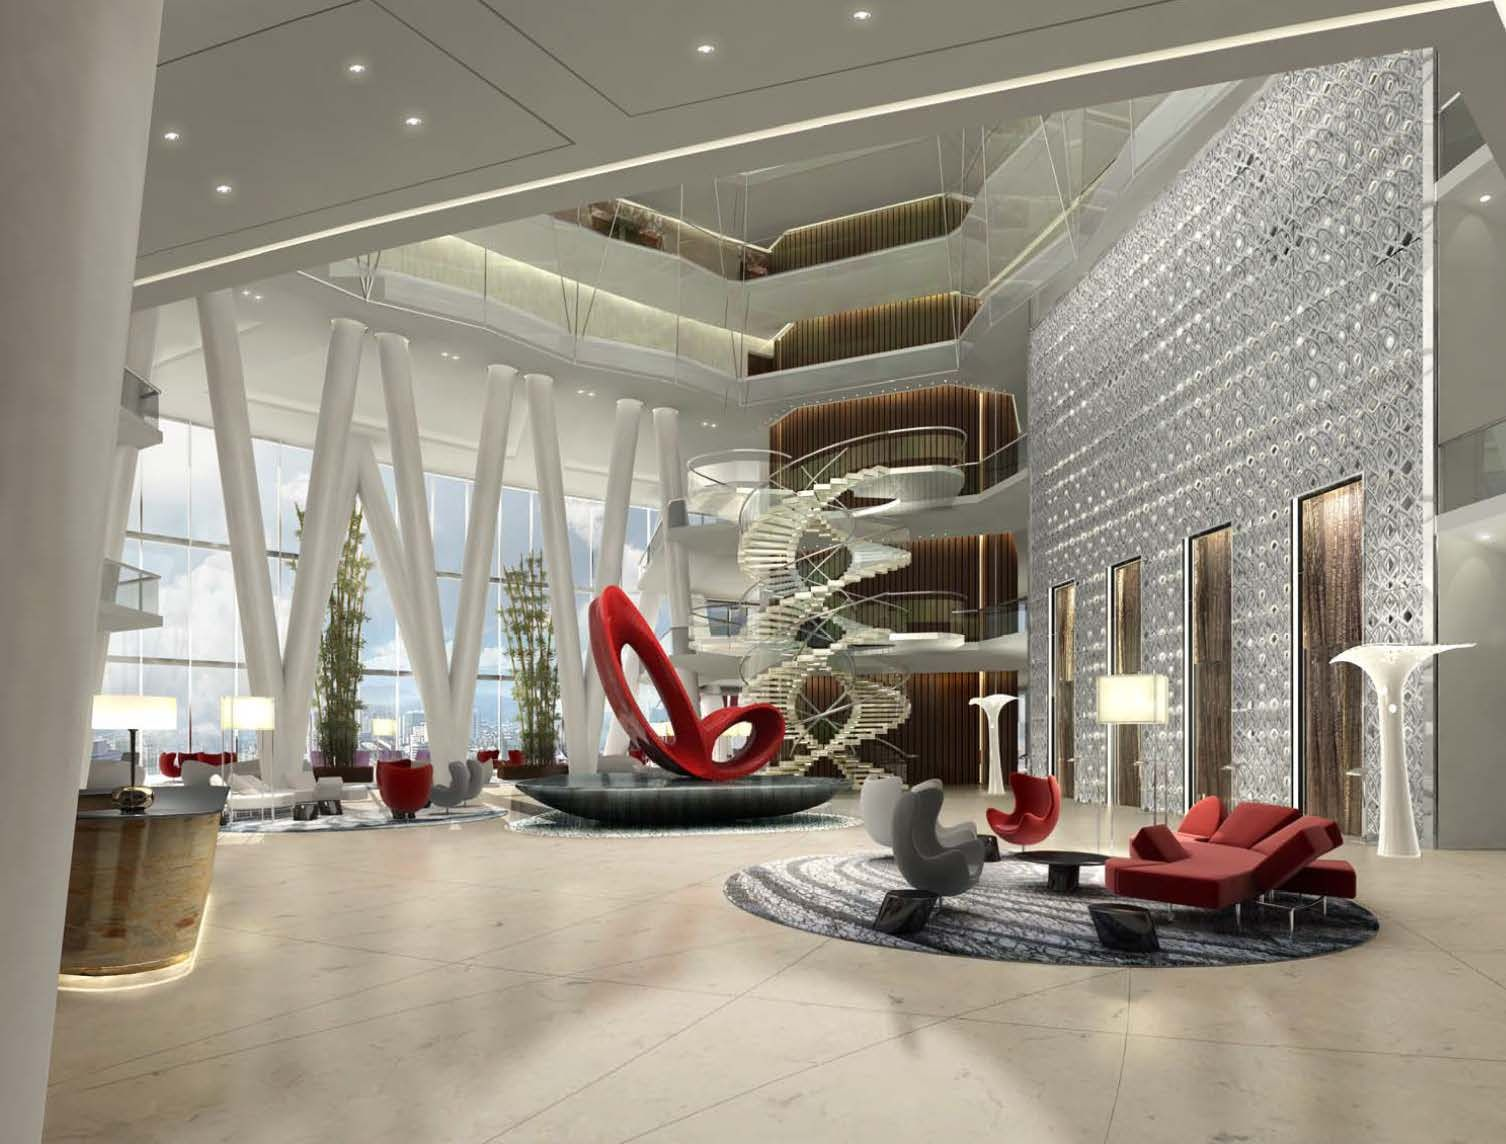 Double Helical Stairs At Newly Opened Four Seasons Hotel In Guangzhou China By Wilkinson Eyre